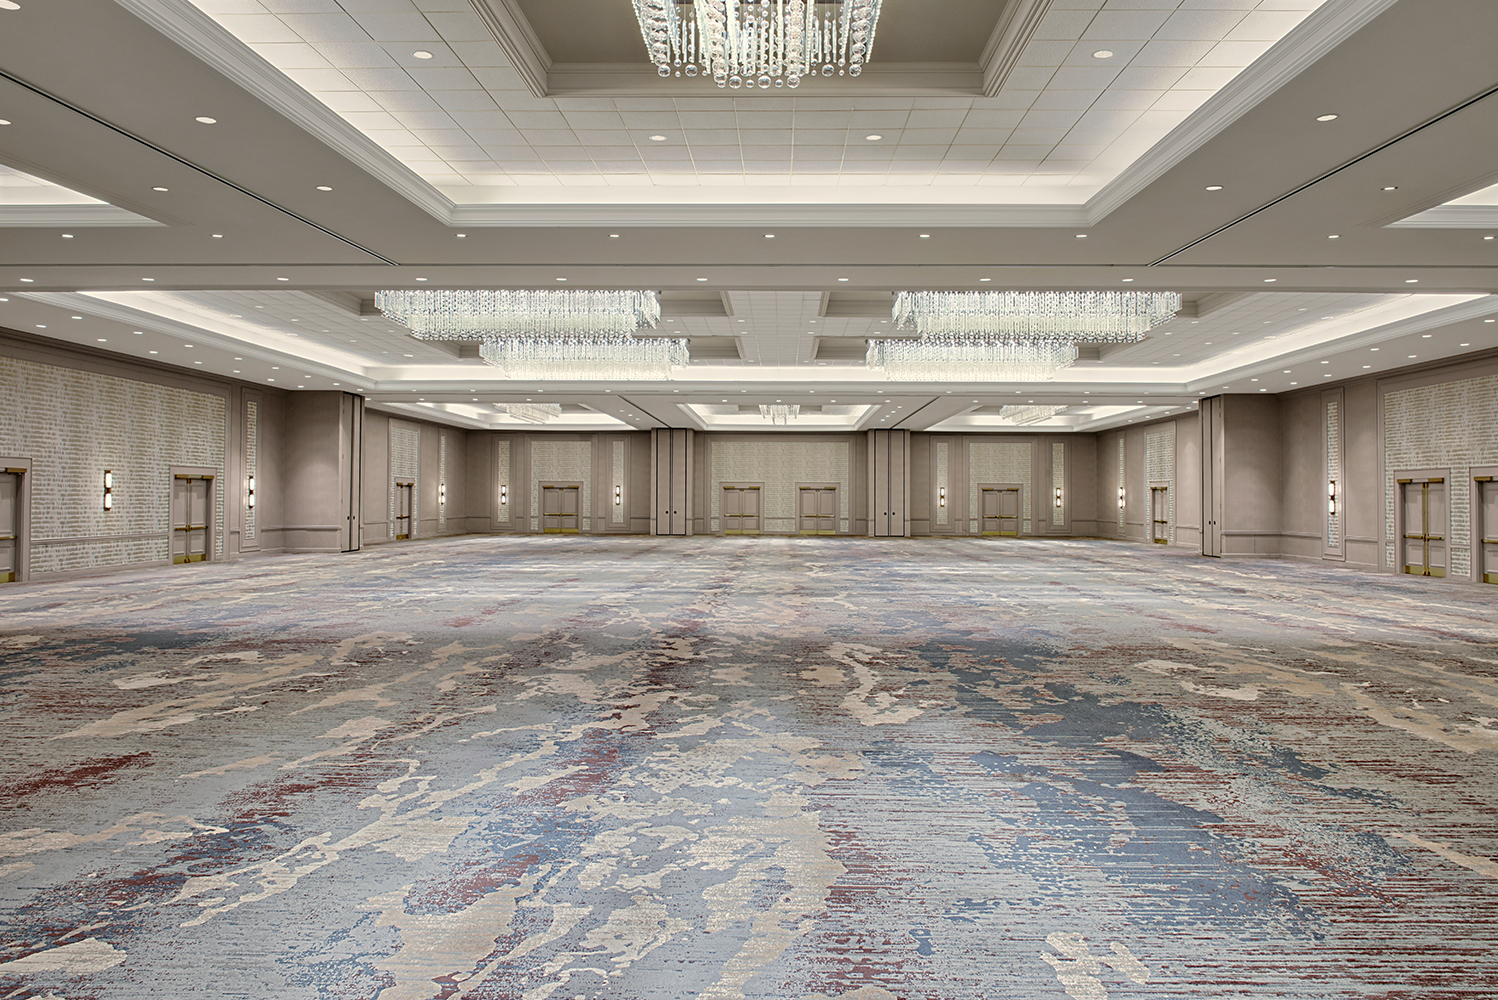 Hirsch Bedner Associates (HBA) completed the second phase of a $26.5 million renovation of Minnesota's largest hotel, Hilton Minneapolis.